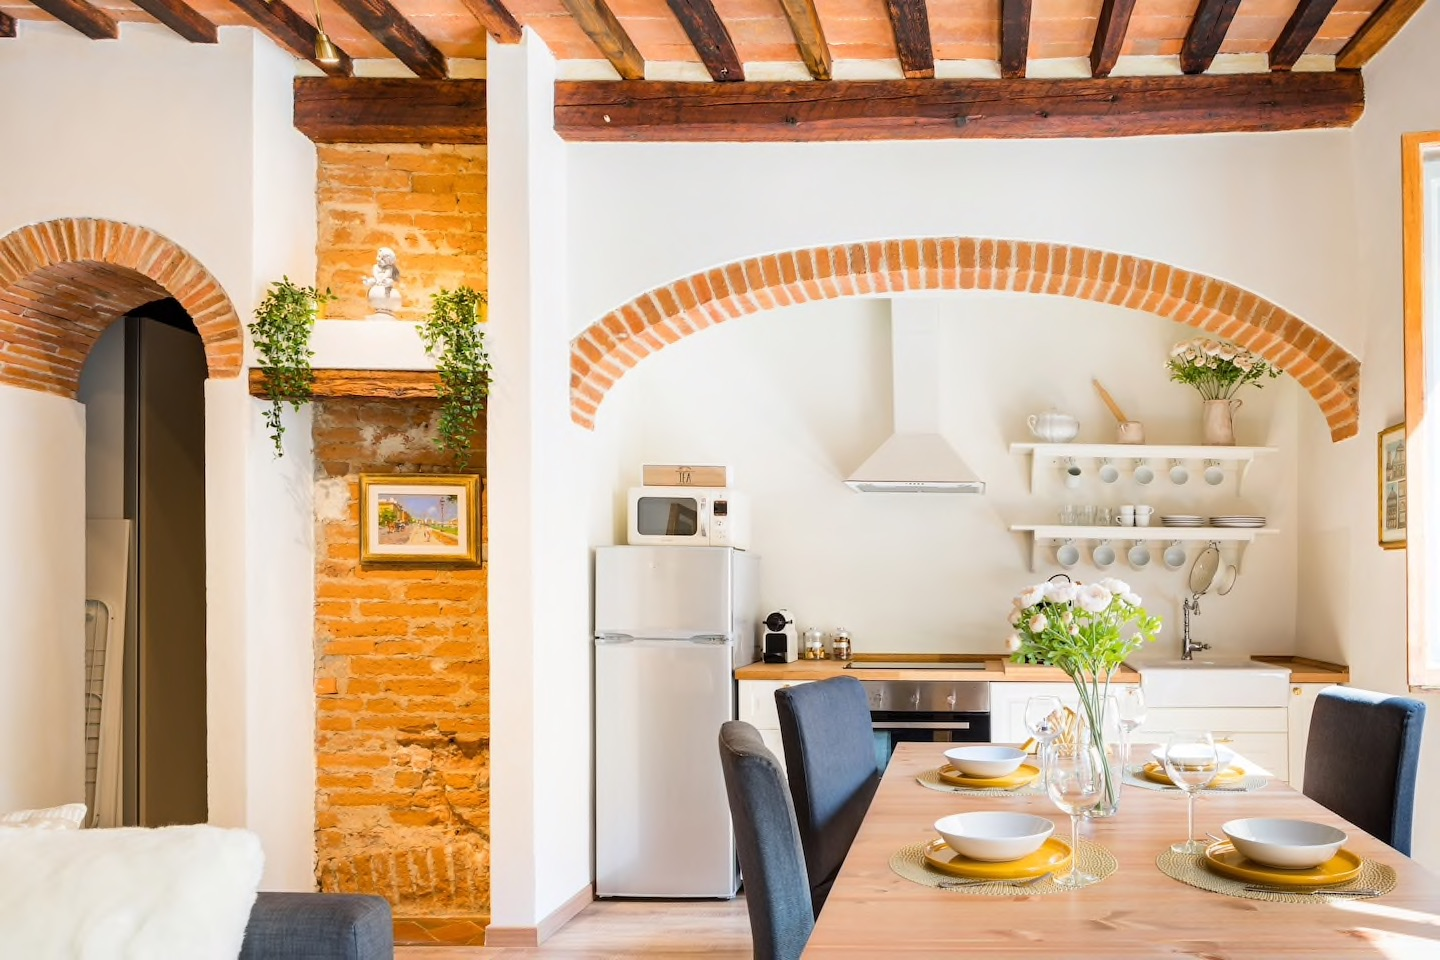 This warm apartment carries with it all of the charms of Tuscany